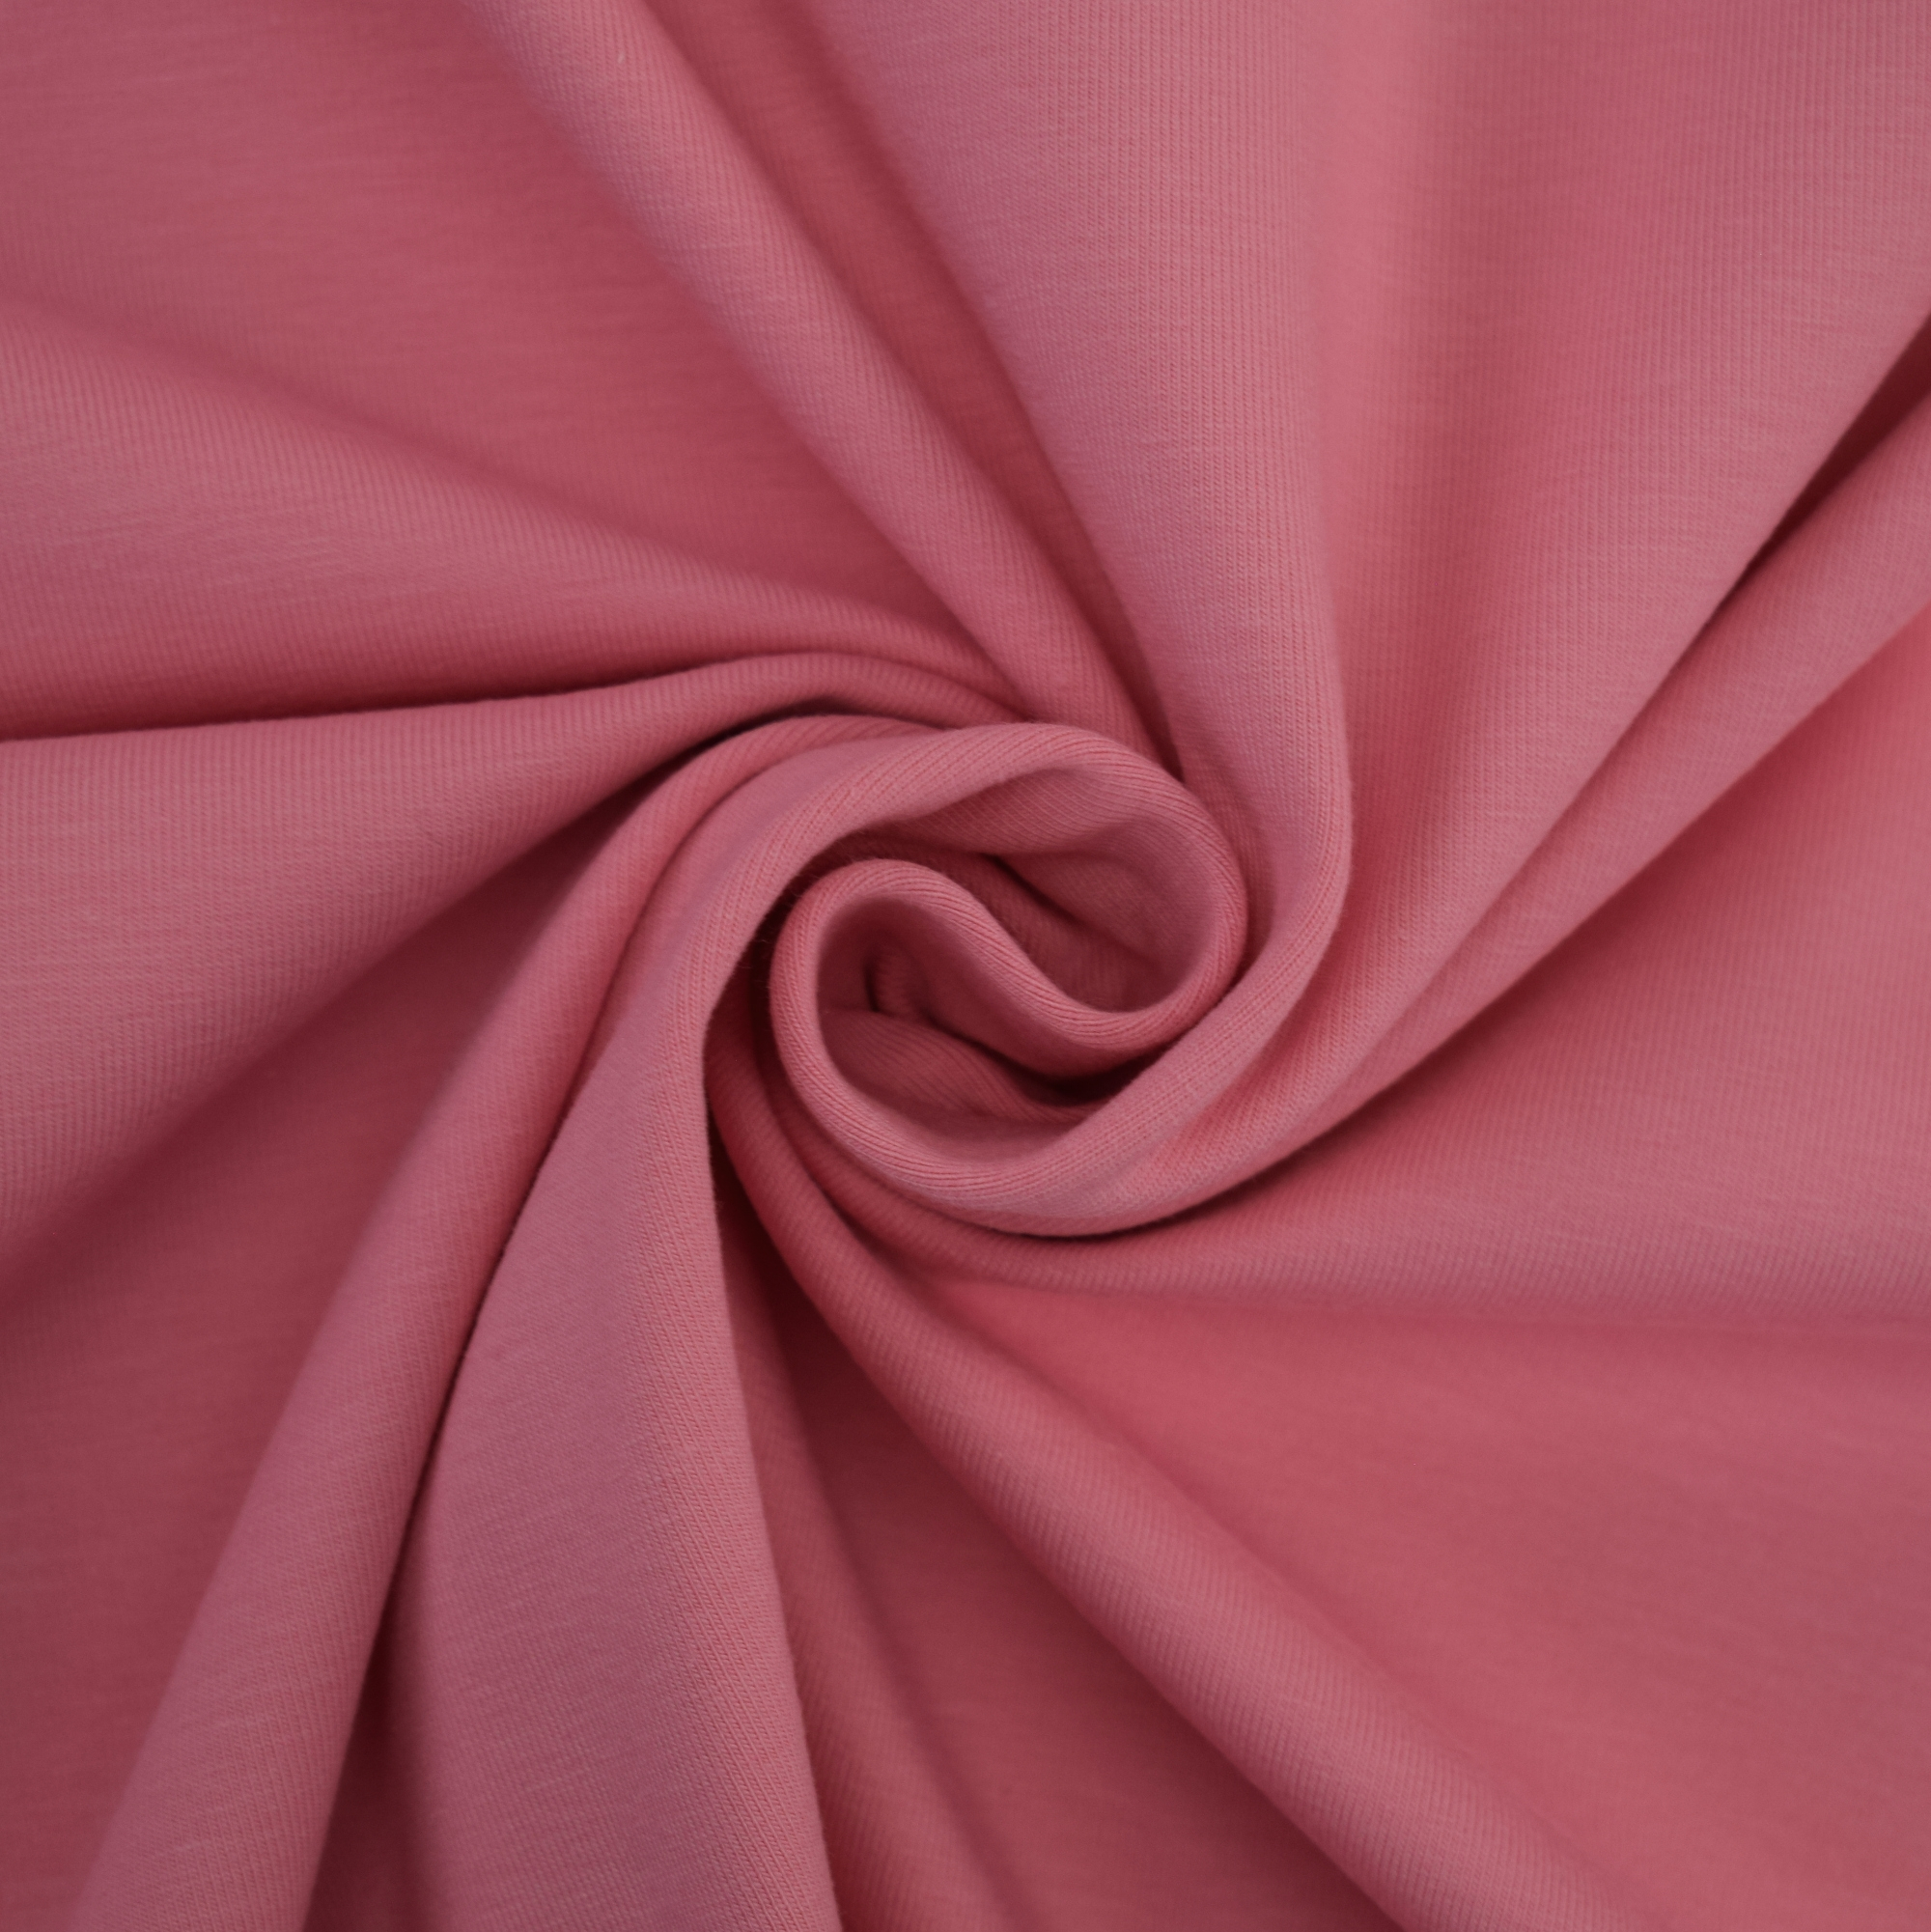 Cotton jersey plain, pink | 455.421-7105 | rosa